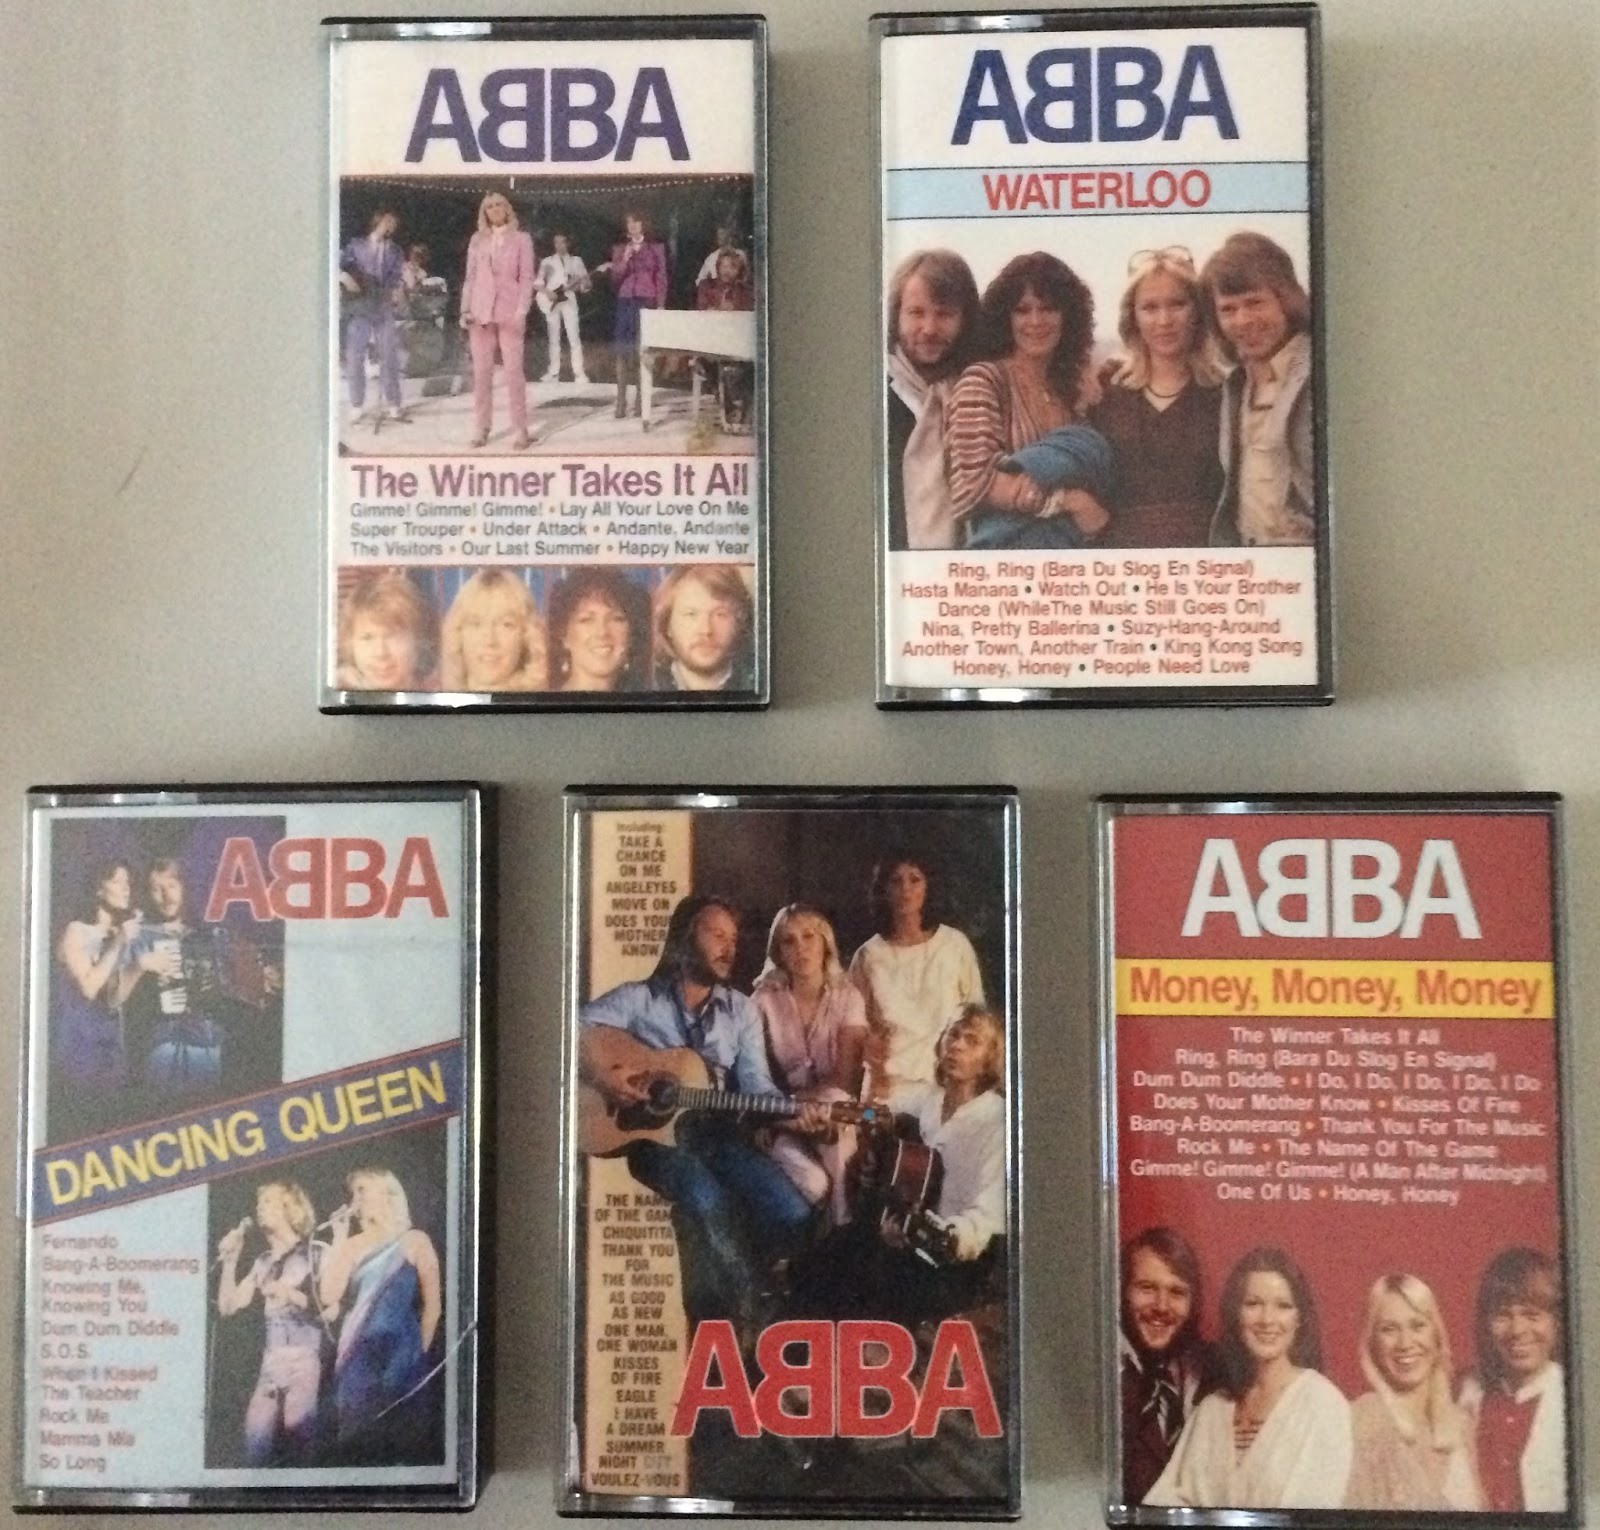 ABBAFanatic: New ABBA Collection Items Bags, Posters, Mugs